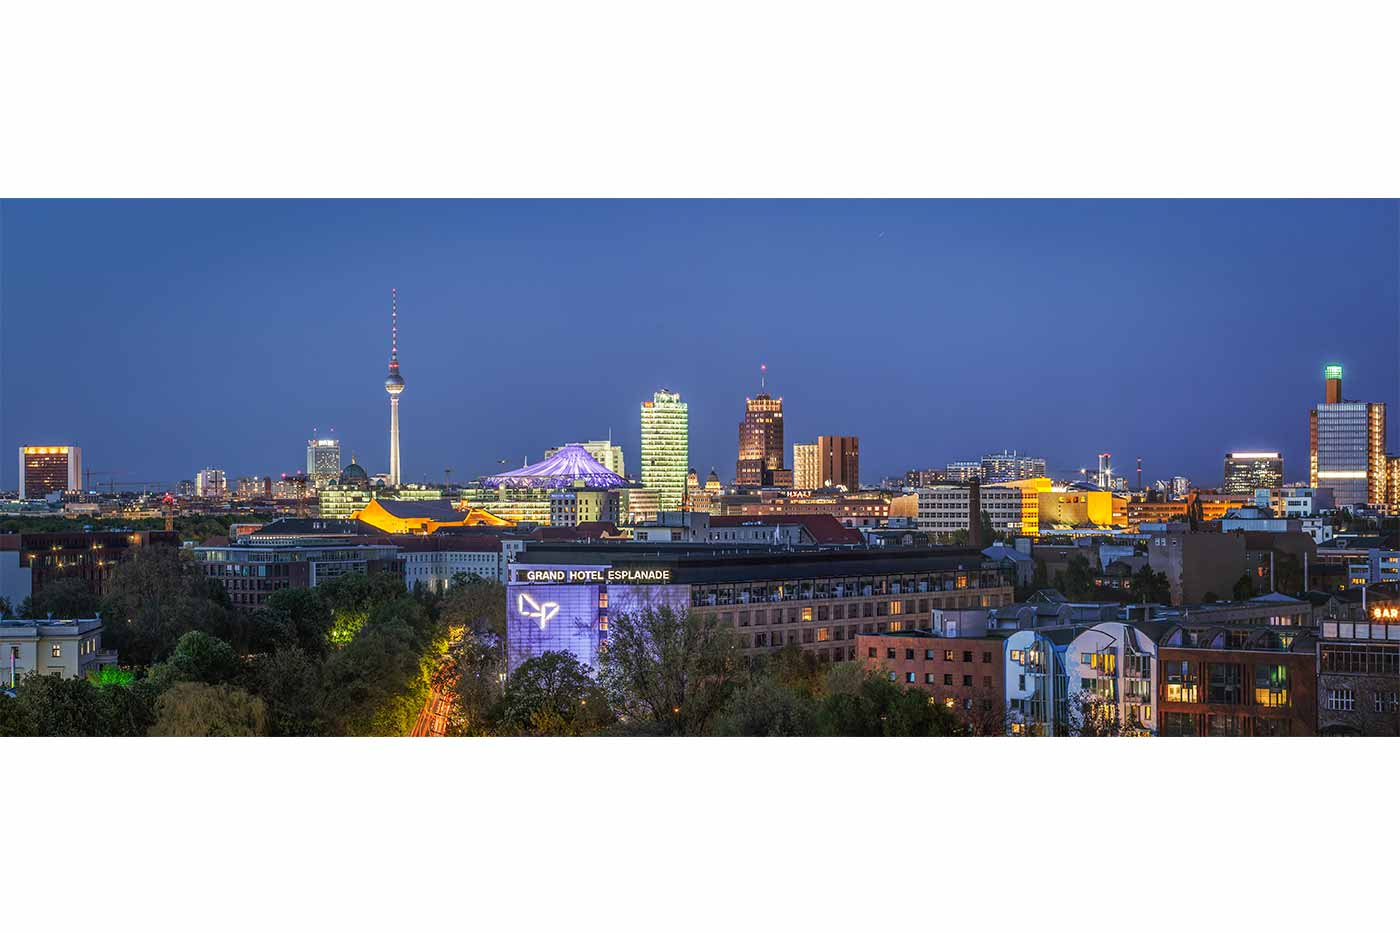 panorama berlin bild der berliner skyline bei nacht kunst design. Black Bedroom Furniture Sets. Home Design Ideas